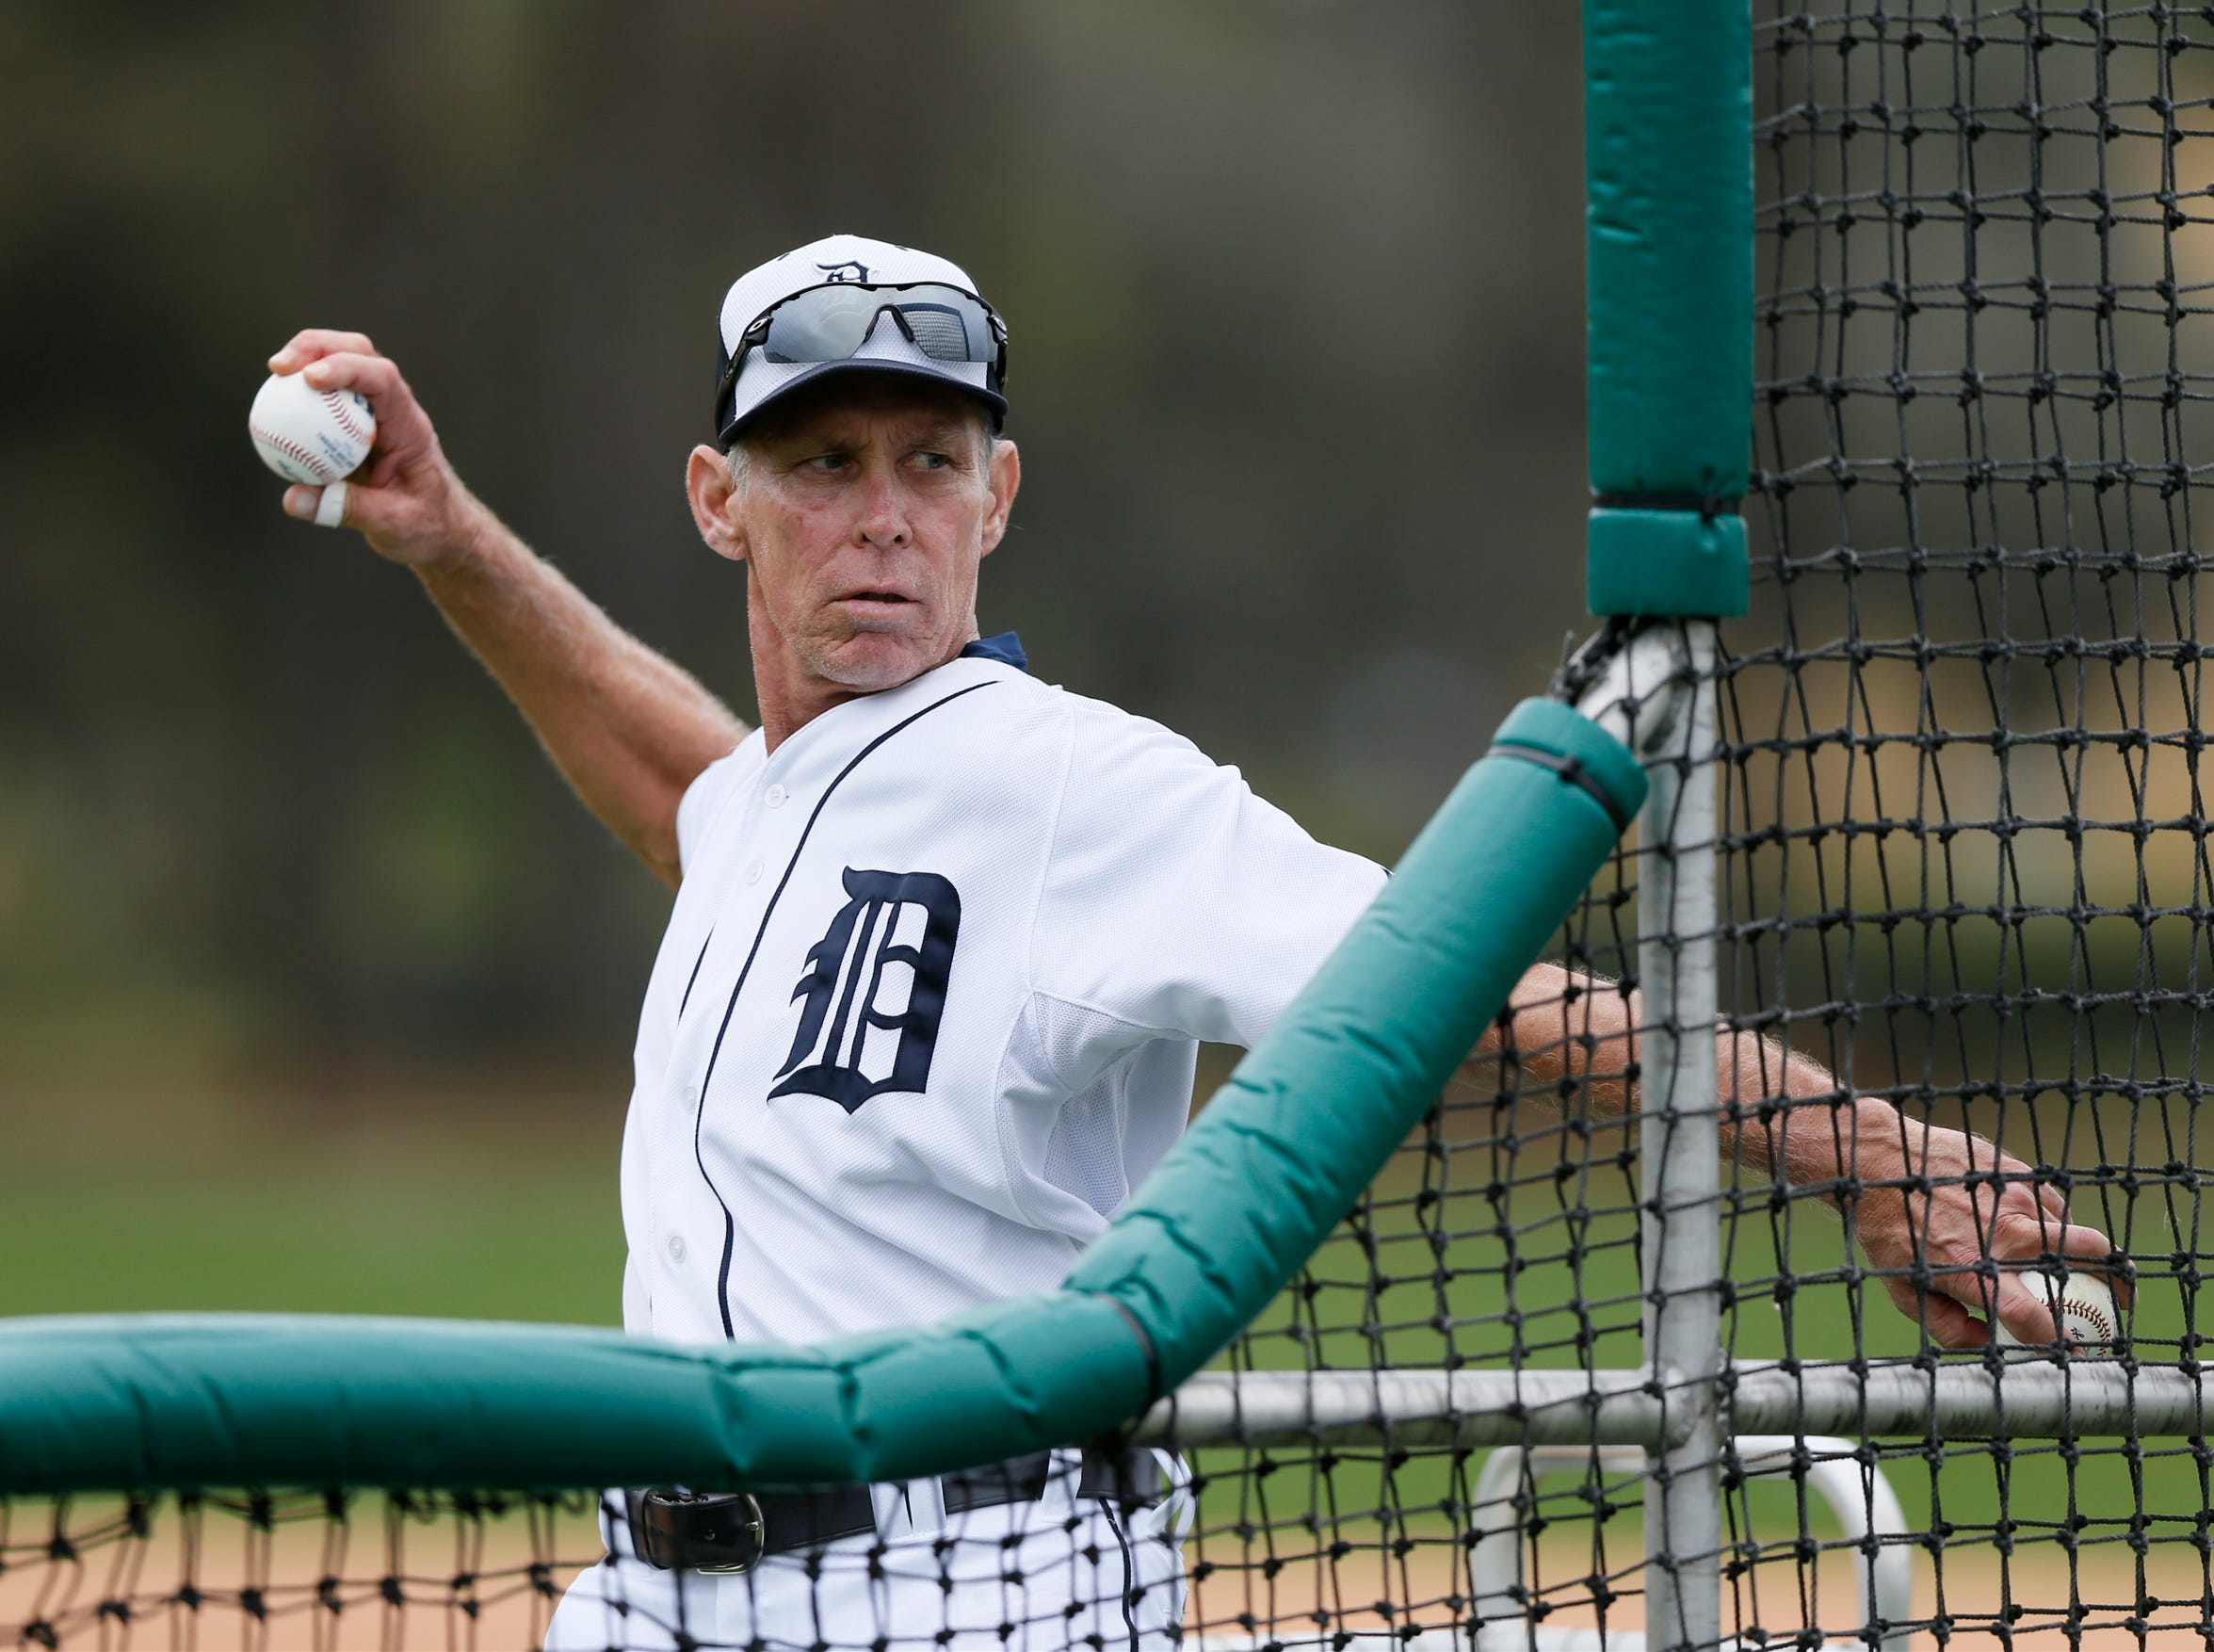 Detroit Tigers Alan Trammell, special assistant to the general manager, throwing batting practice at spring training on Thursday, February, 26, 2015 in Lakeland Florida.